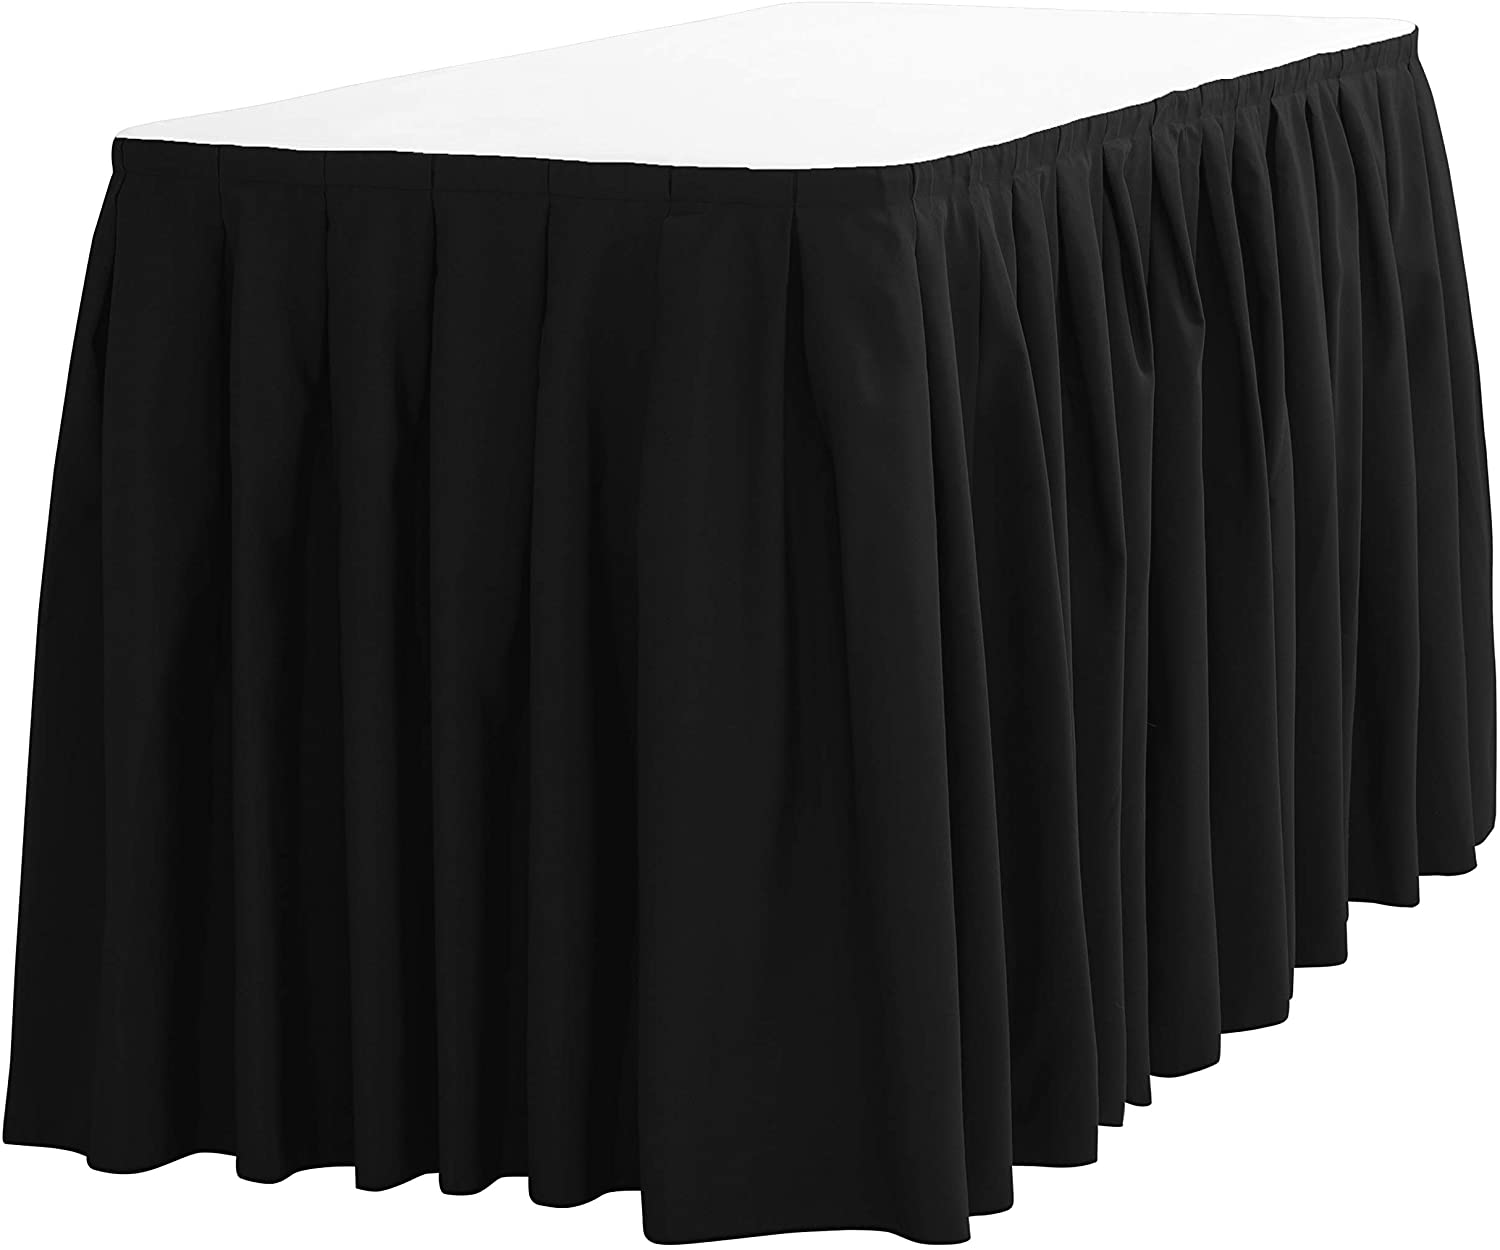 LinenTablecloth 21 ft. Accordion Pleat Polyester Table Skirt Black